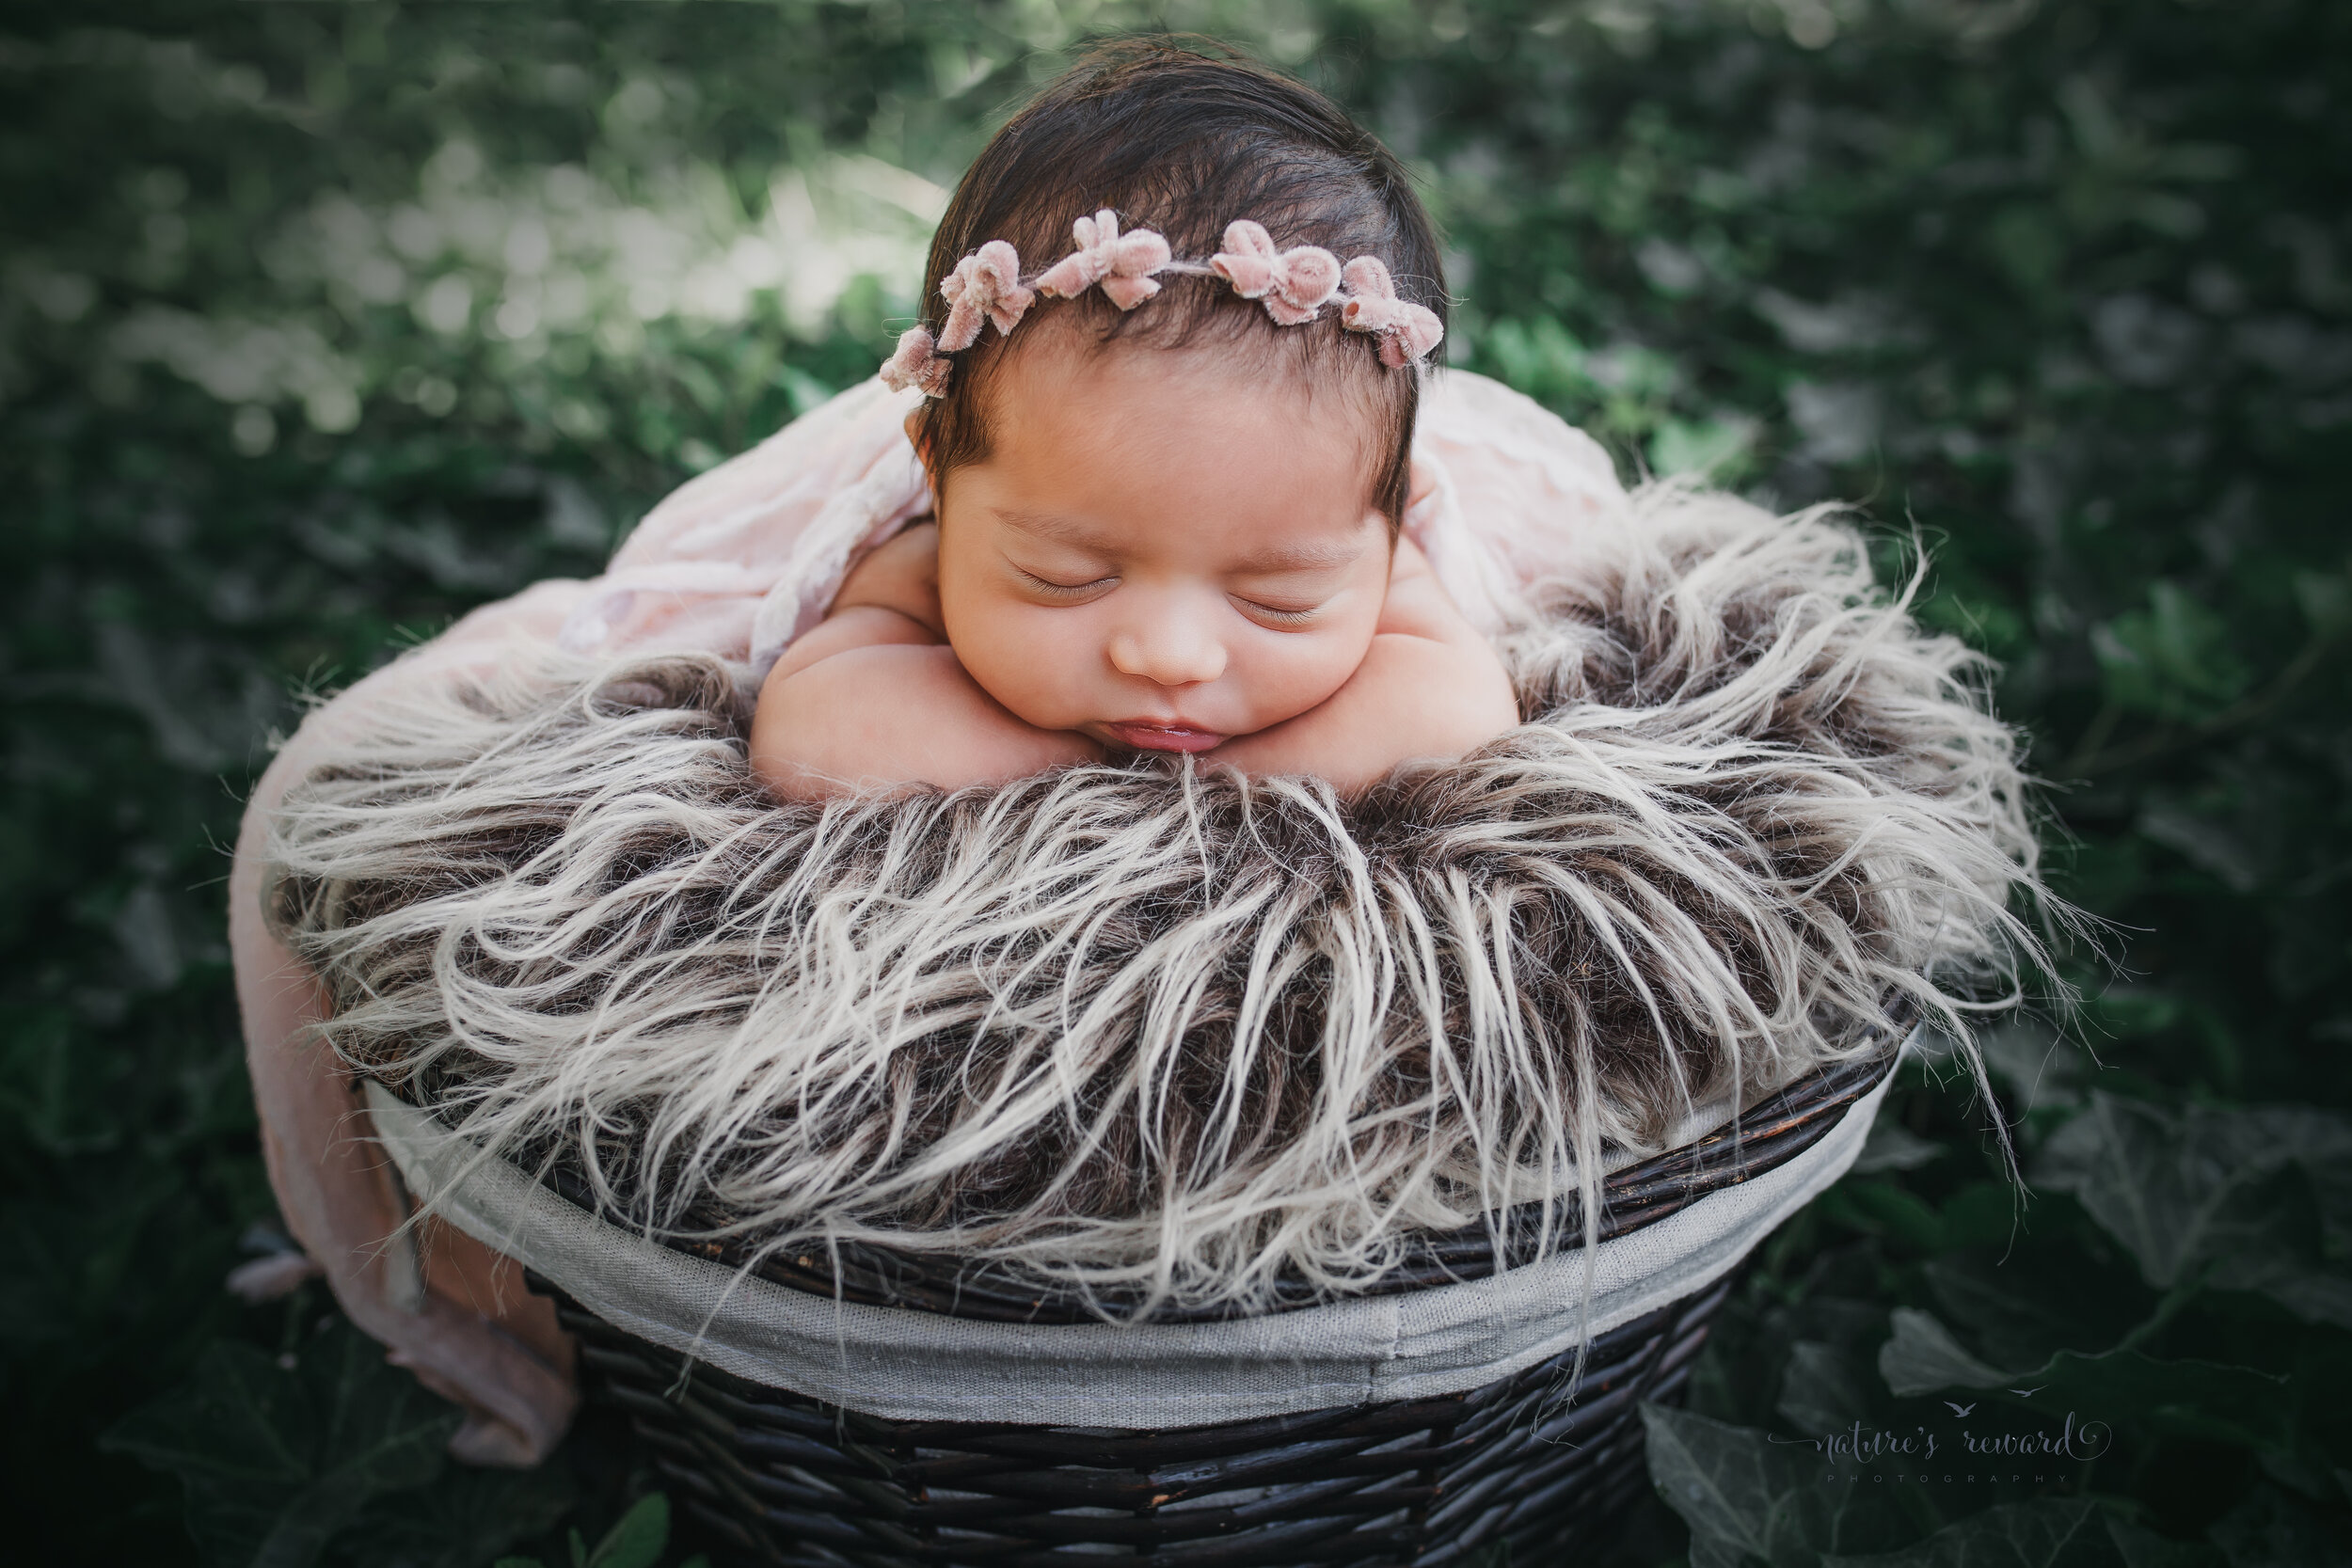 Sweet baby girl in a garden of ivy, a newborn portrait by Nature's Reward Photography